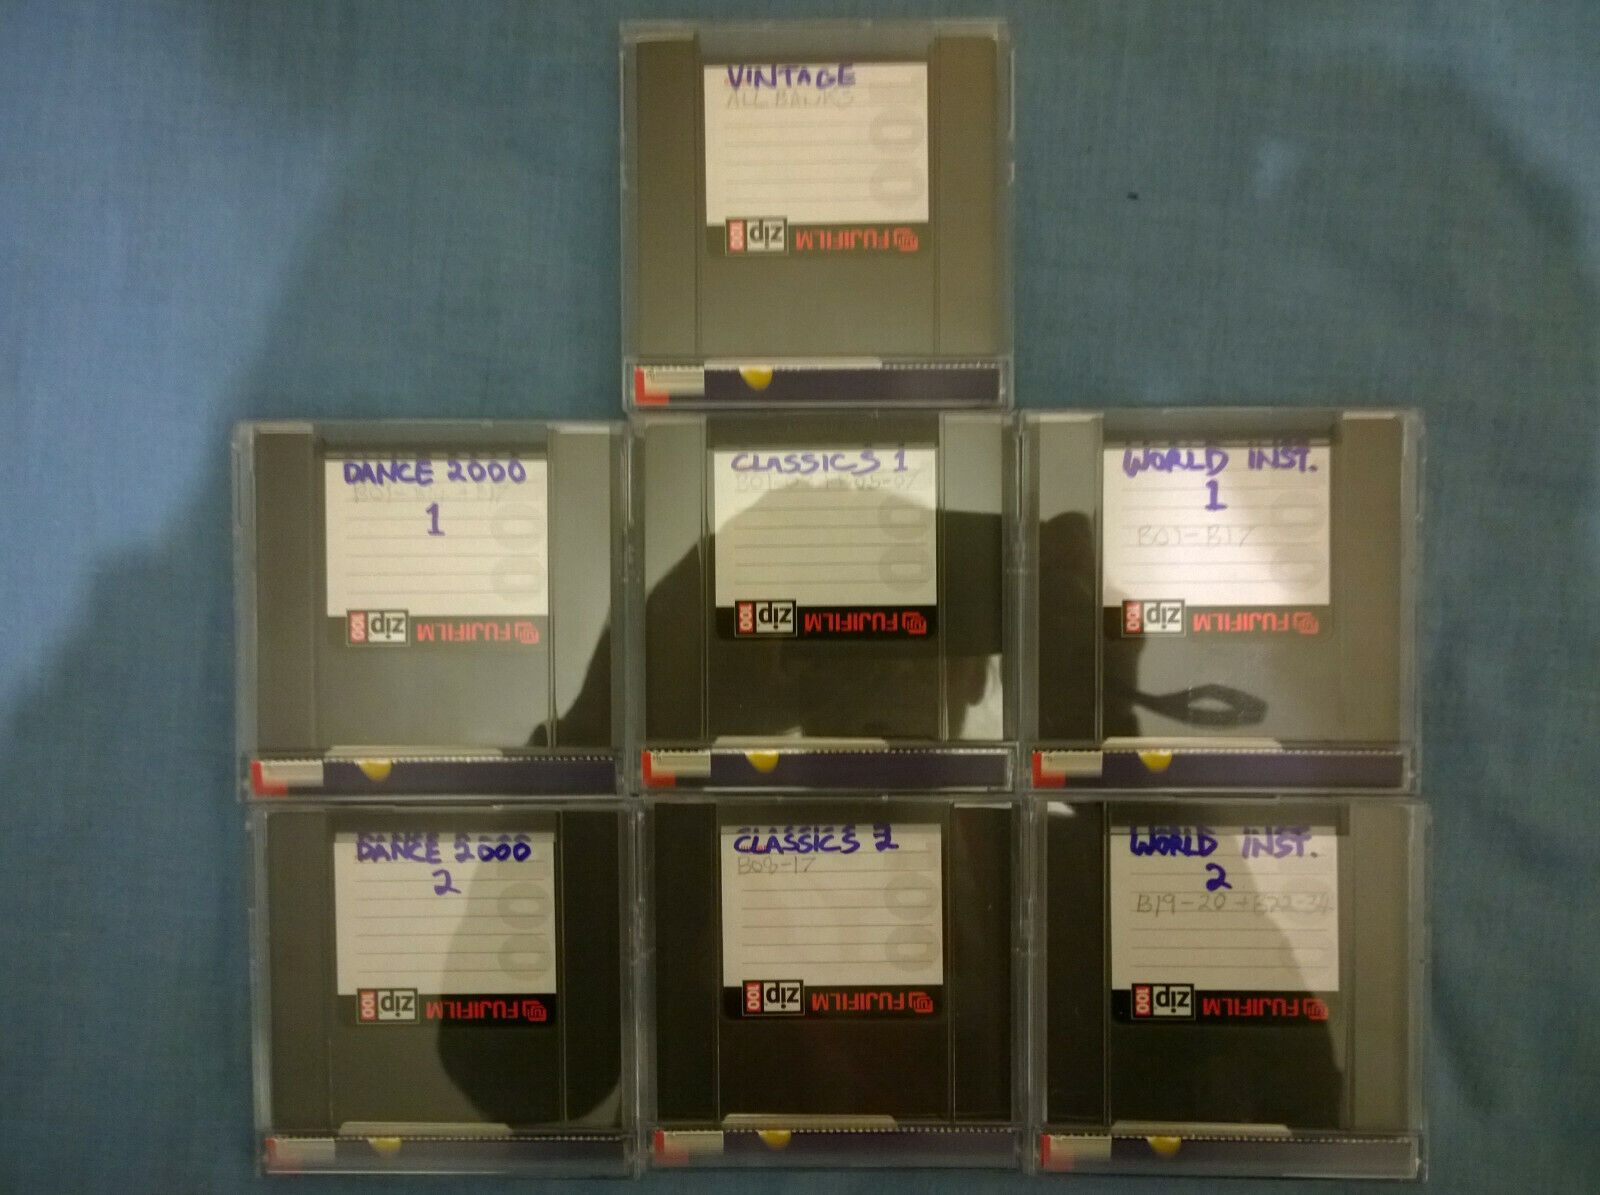 EMU sample collection on 7 new ZIP100 disks